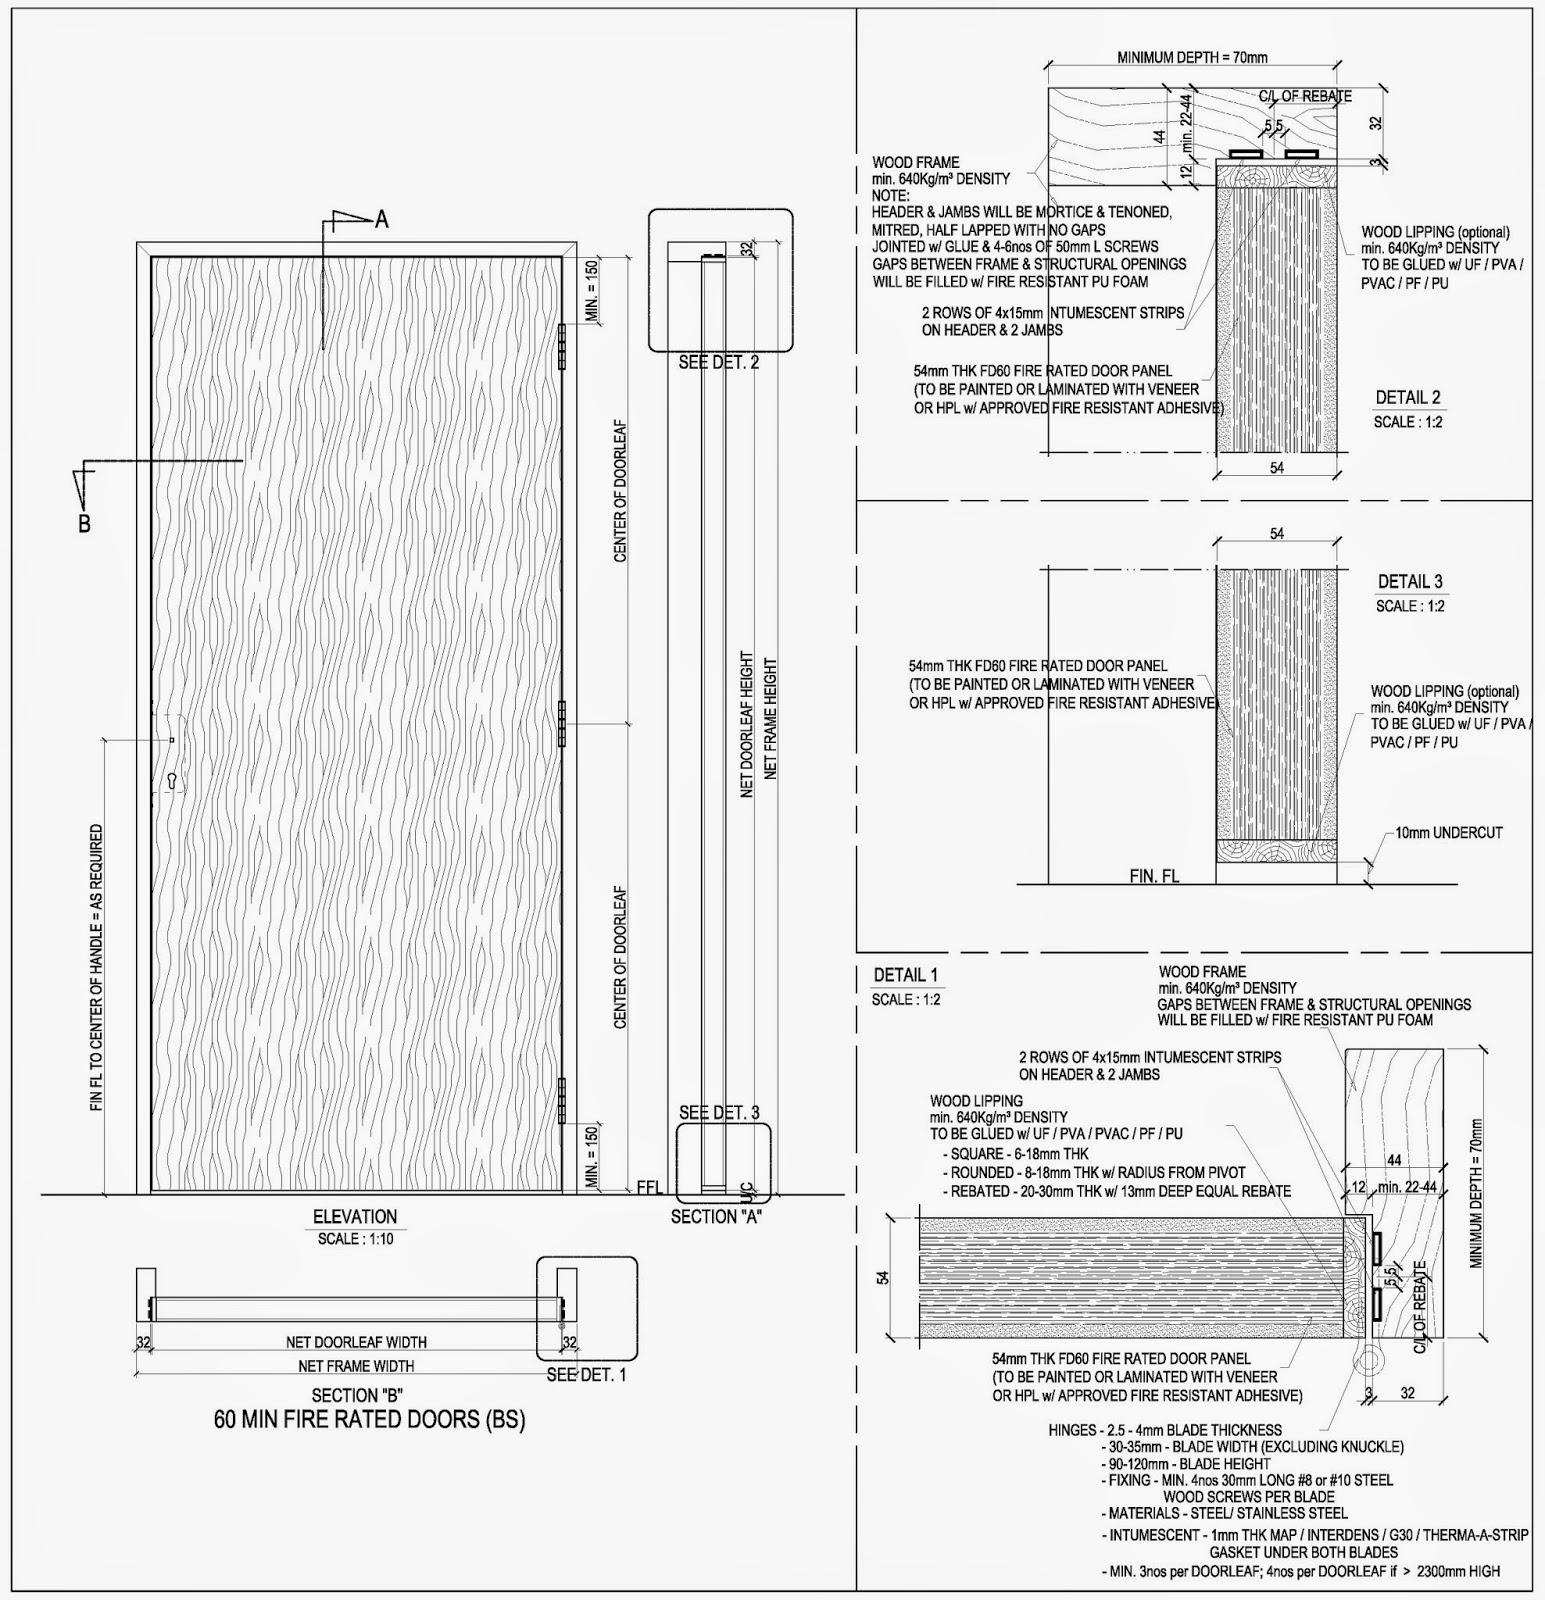 Can rated doors be undercut? Technical Informations For Architectural And Industrial Related Works Sample Details Of 30 60 90 120 Min Fire Rated Doors Bs 476 P 22